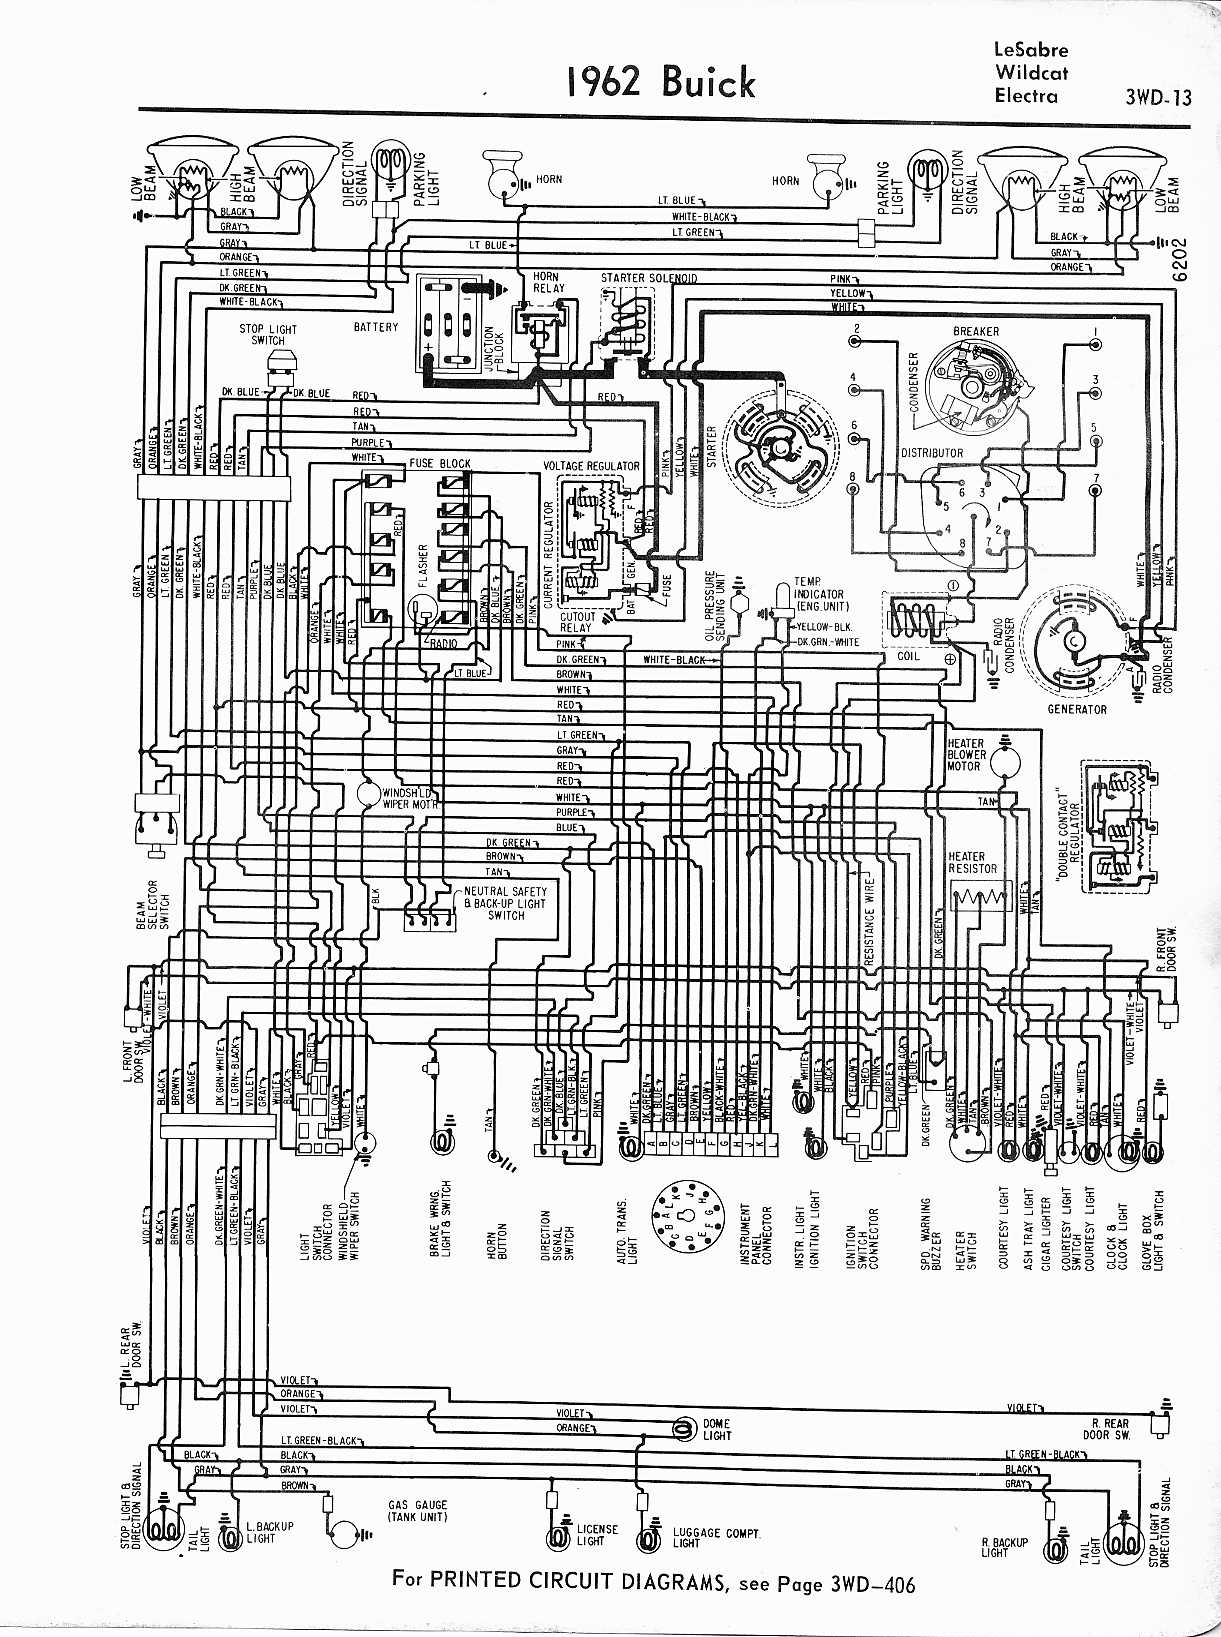 Fuse Diagram 1997 Buick Riviera Wiring Library Box 97 Lesabre 1969 Diagrams Rh Cad Fds Co Uk 1971